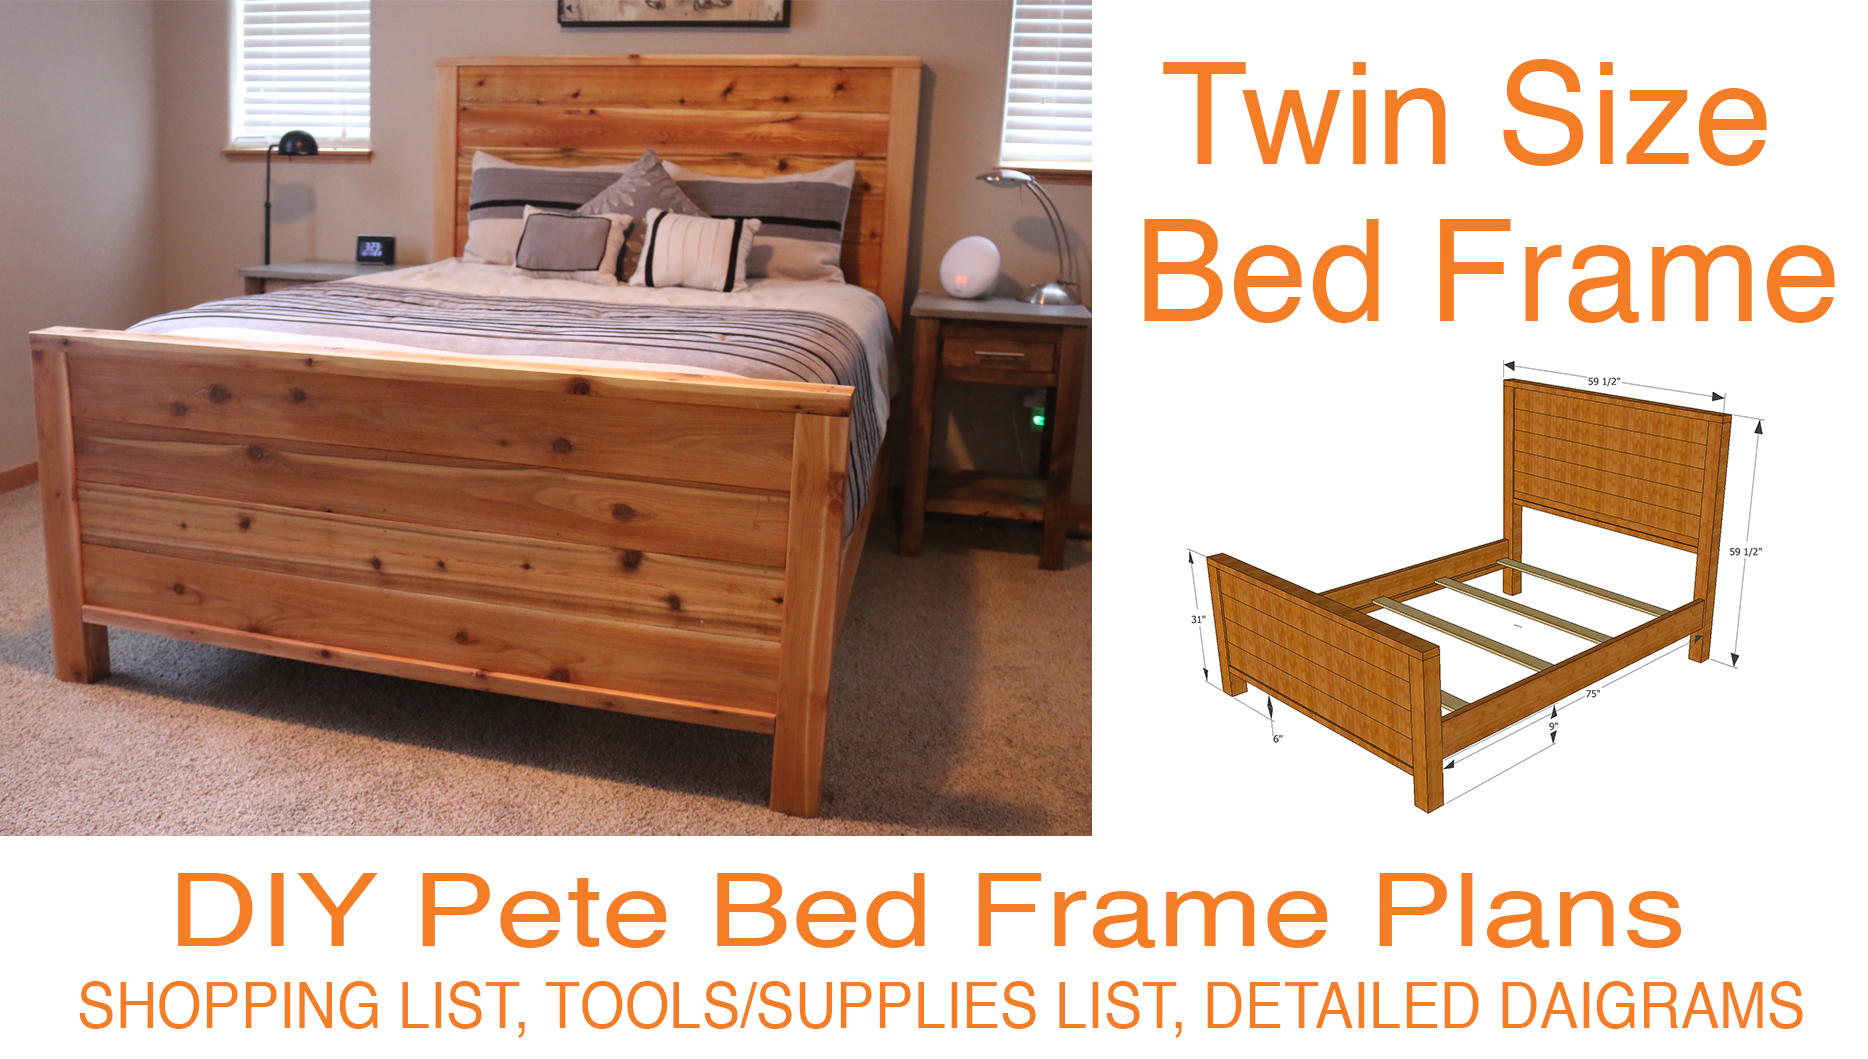 diy bed frame plans how to make a bed frame with diy pete. Black Bedroom Furniture Sets. Home Design Ideas